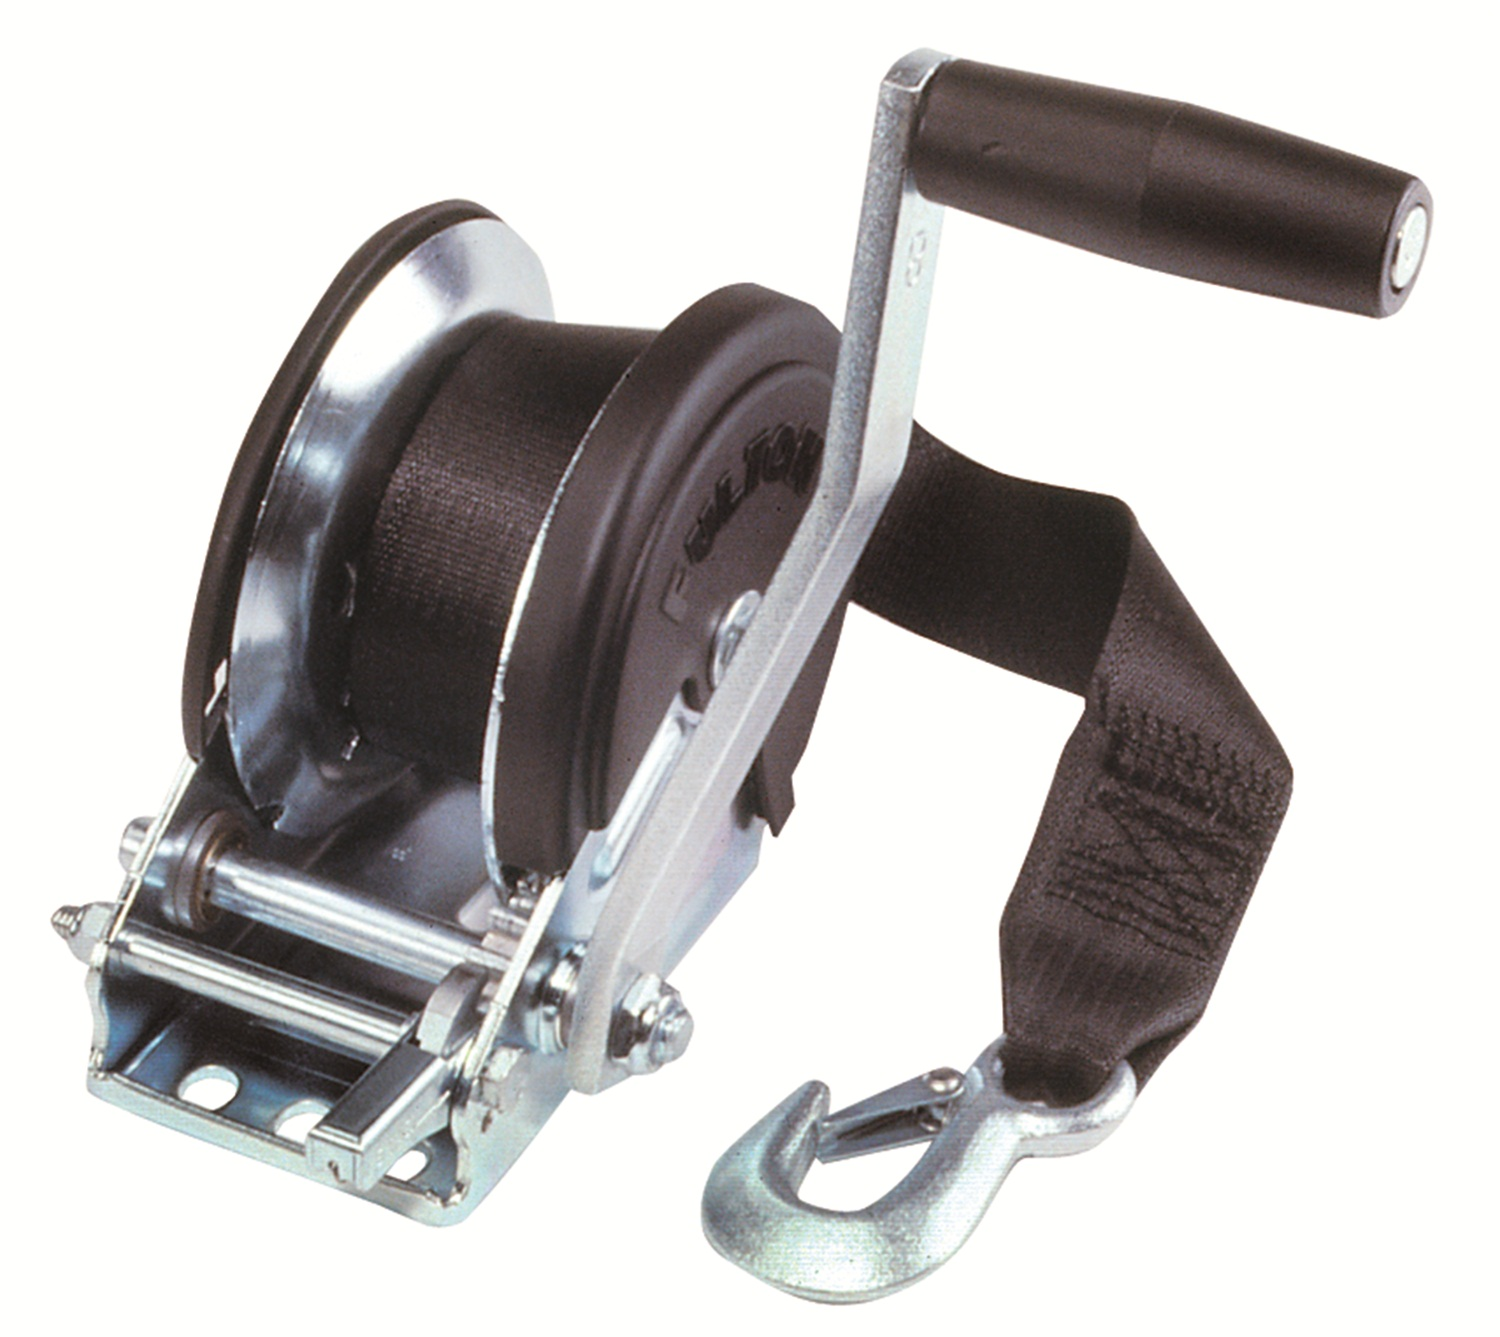 Fulton T1500ZC101 Trailer Winch; Incl. 20 ft. Strap And Cover; Single-Speed; 1500 lb. Capacity; by Fulton